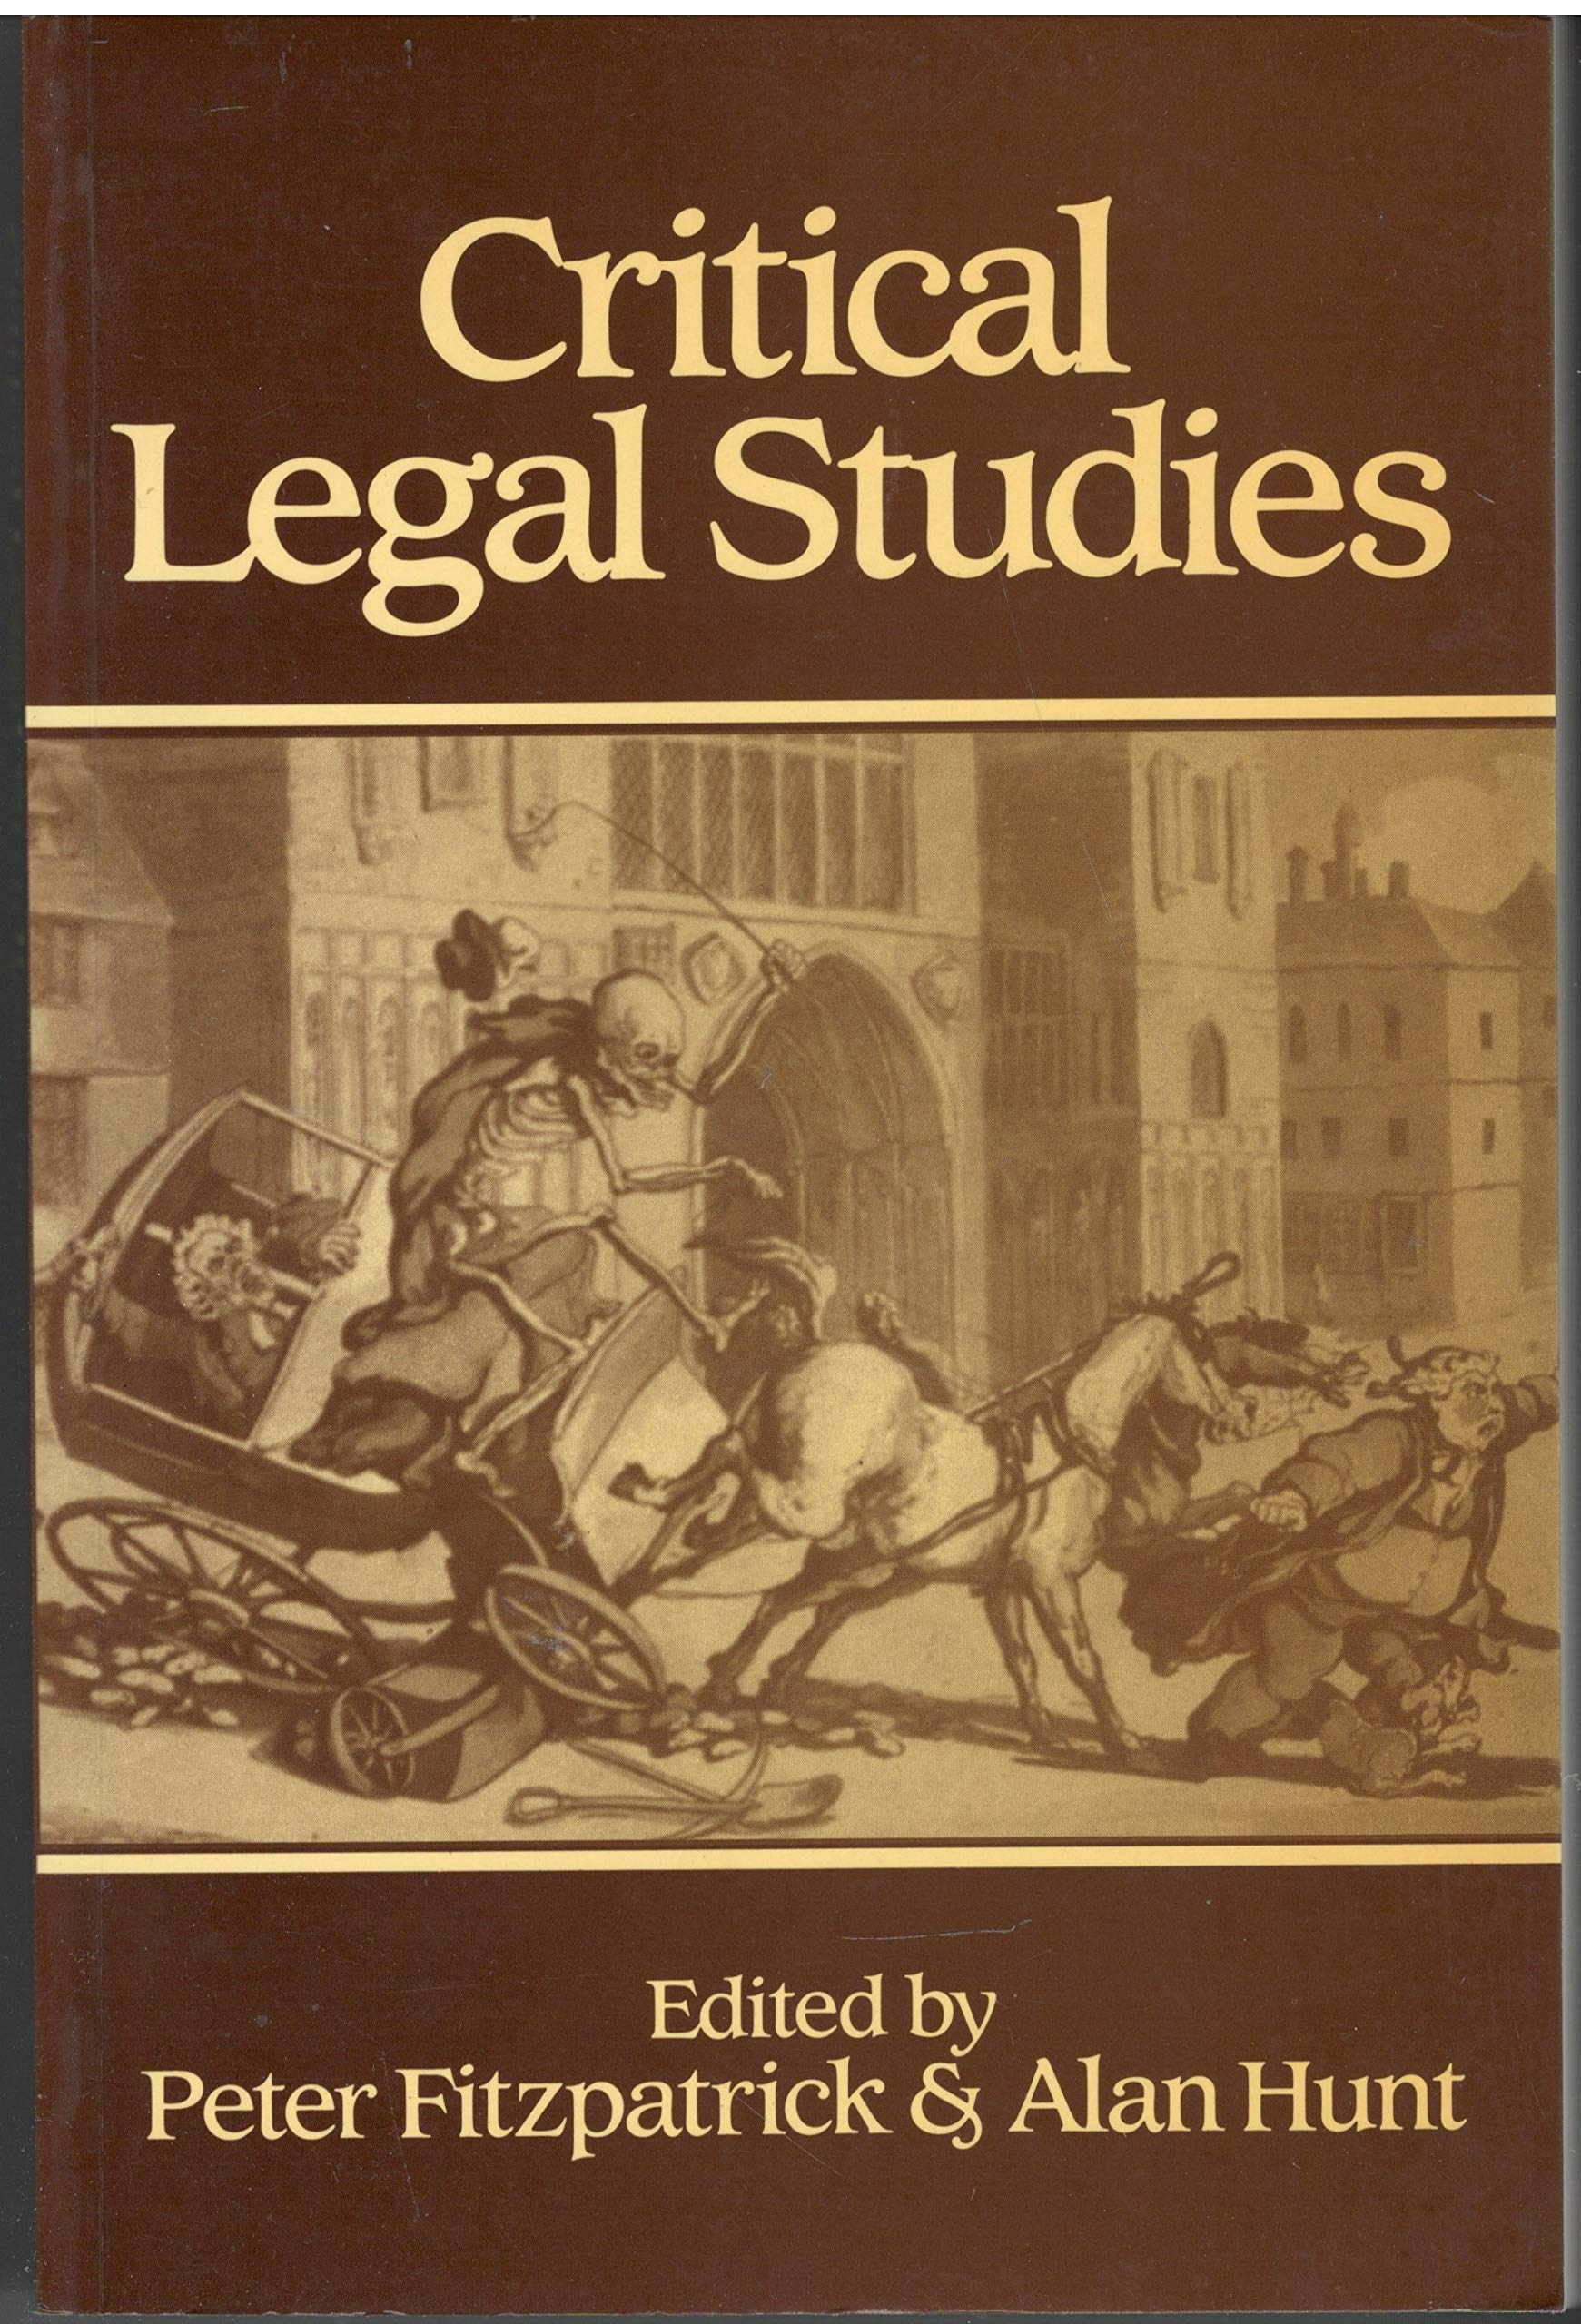 Critical Legal Studies (Journal of Law and Society): Fitzpatrick, Peter,  Hunt, Alan: 9780631157182: Amazon.com: Books